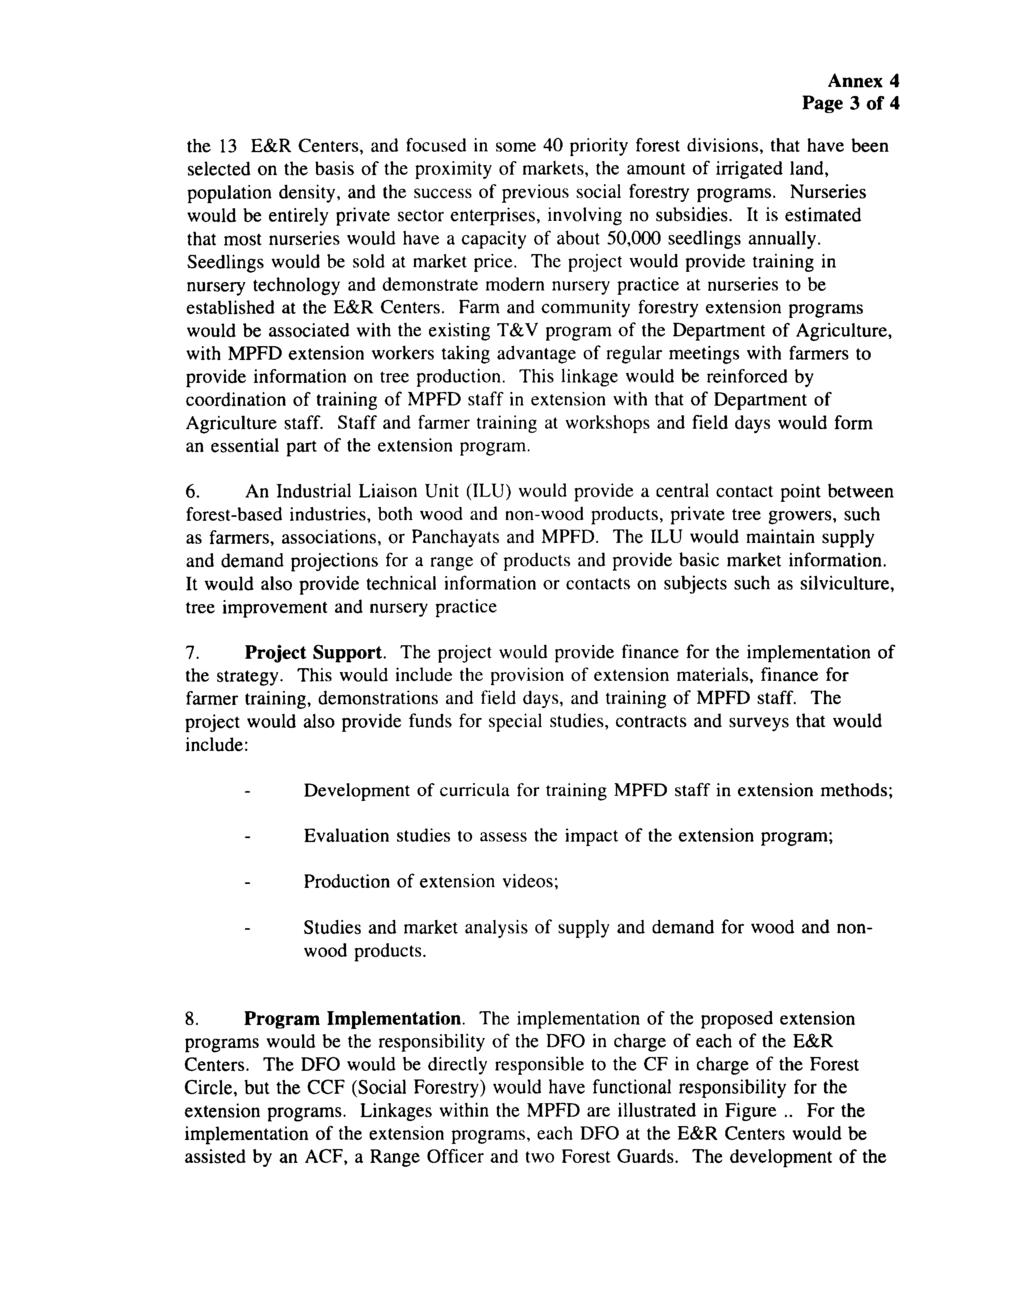 Annex 4 Page 3 of 4 the 13 E&R Centers, and focused in some 40 priority forest divisions, that have been selected on the basis of the proximity of markets, the amount of irrigated land, population